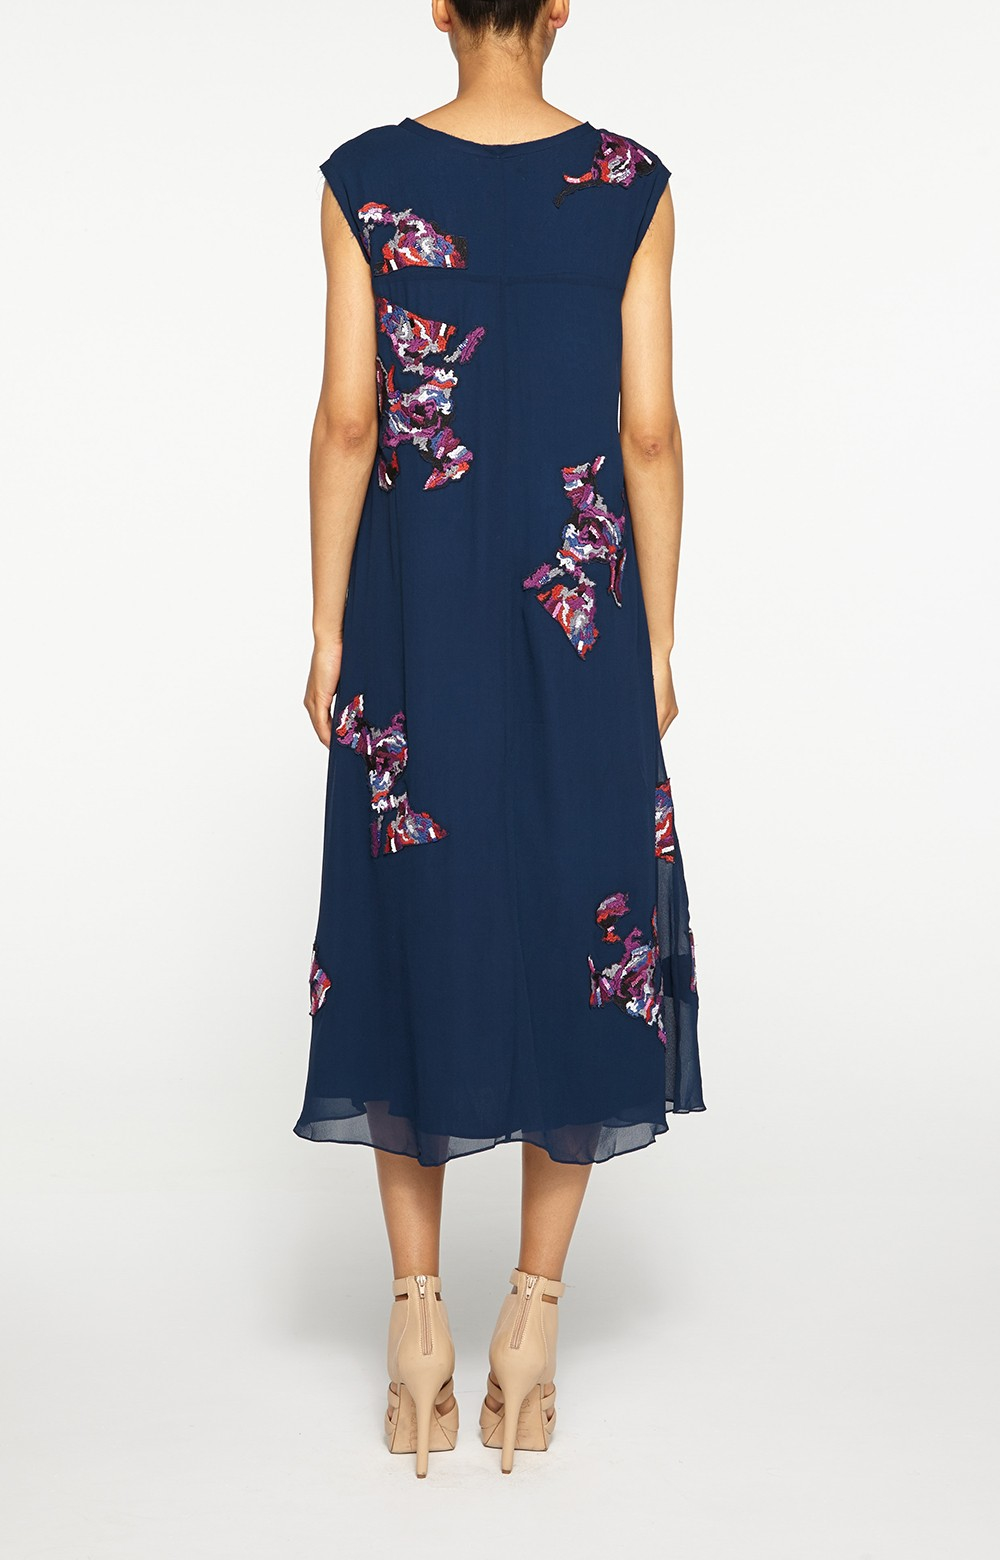 Lyst nicole miller floral embroidered midi dress in blue